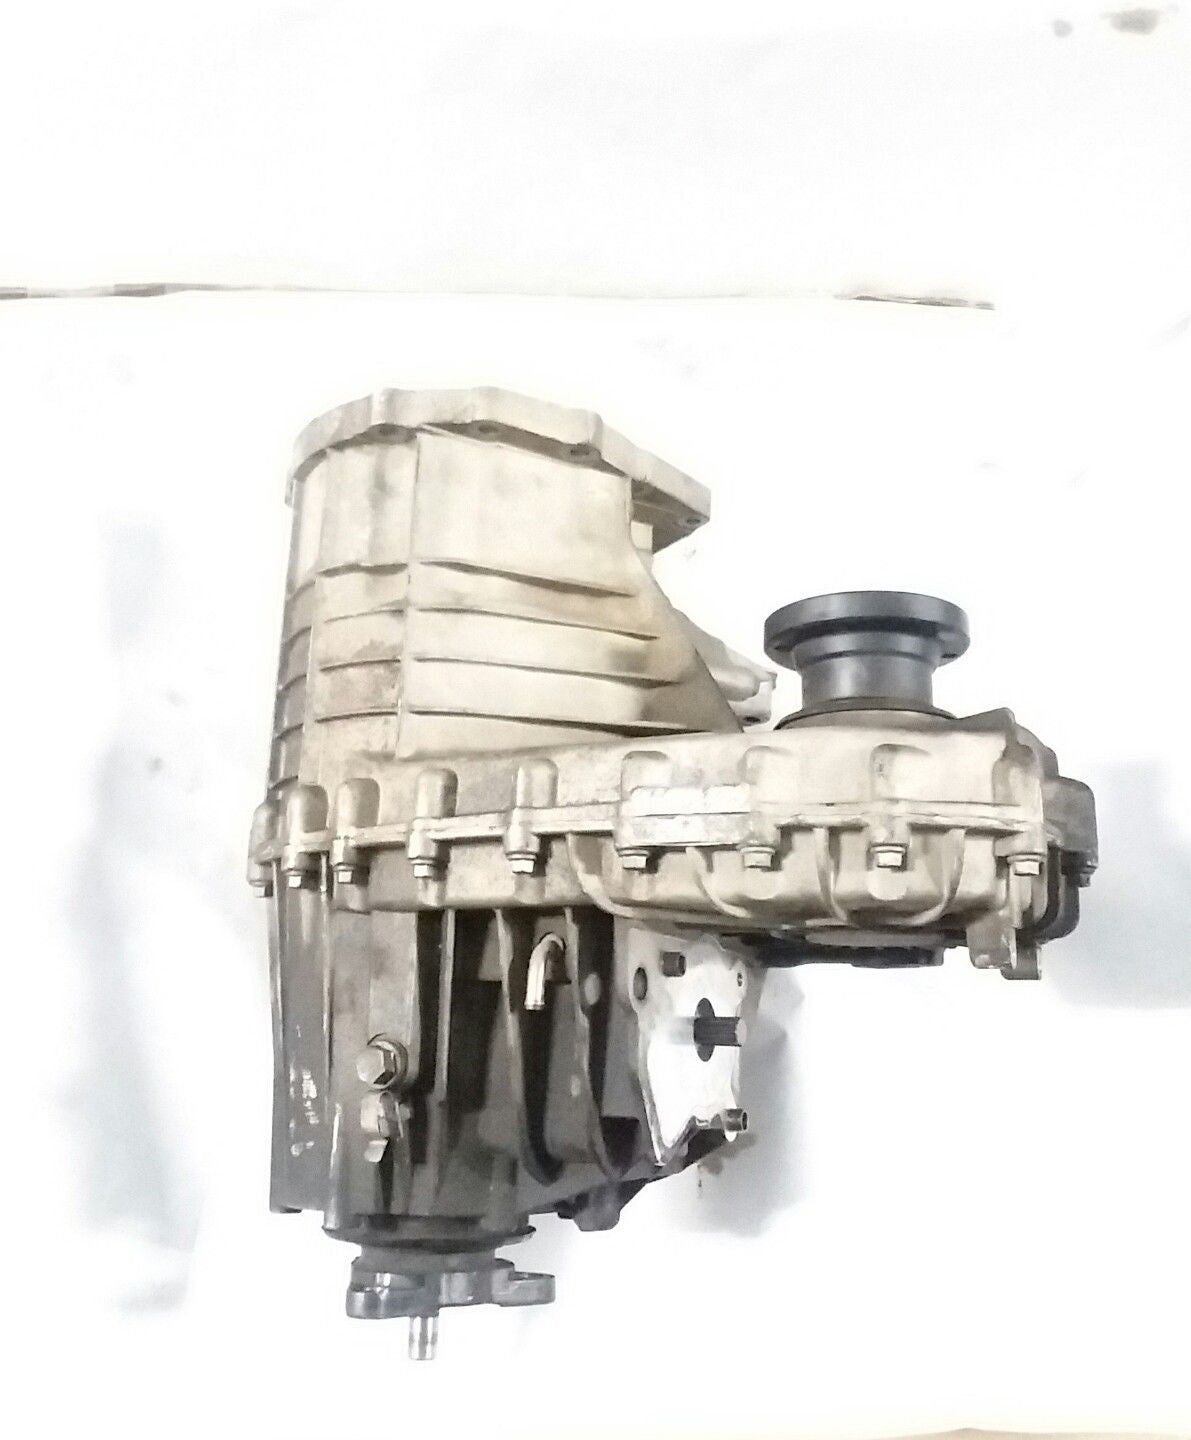 2003 - 2005 RANGE ROVER L322 FRONT DIFFERENTIAL TRANSFER CASE 4.4L M62 V8